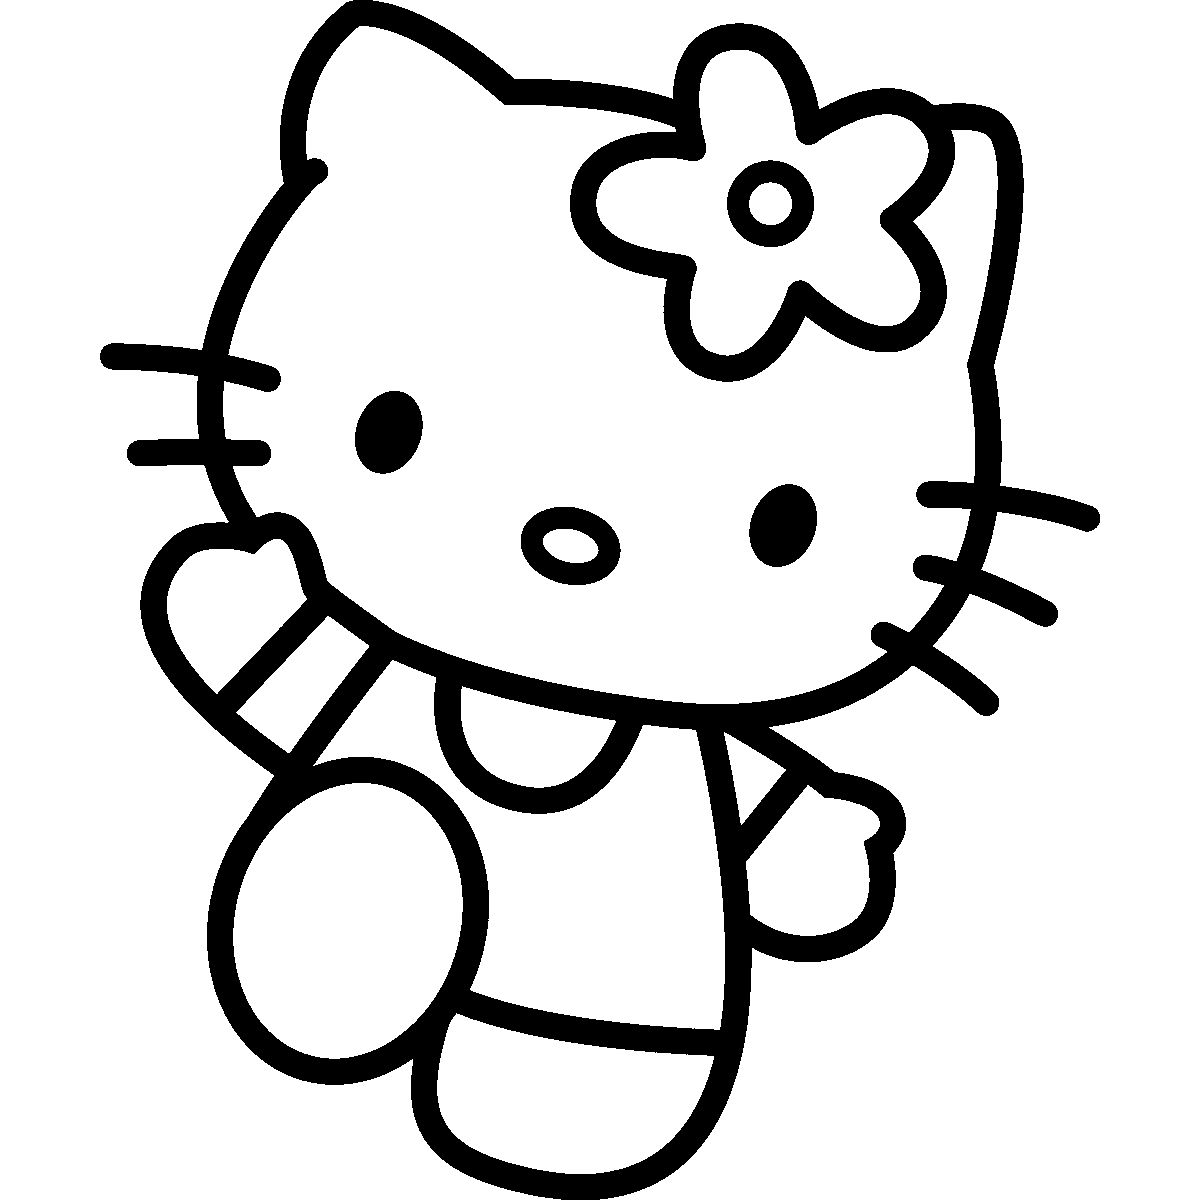 Hello Kitty Silhouette At Getdrawings Com Free For Personal Use